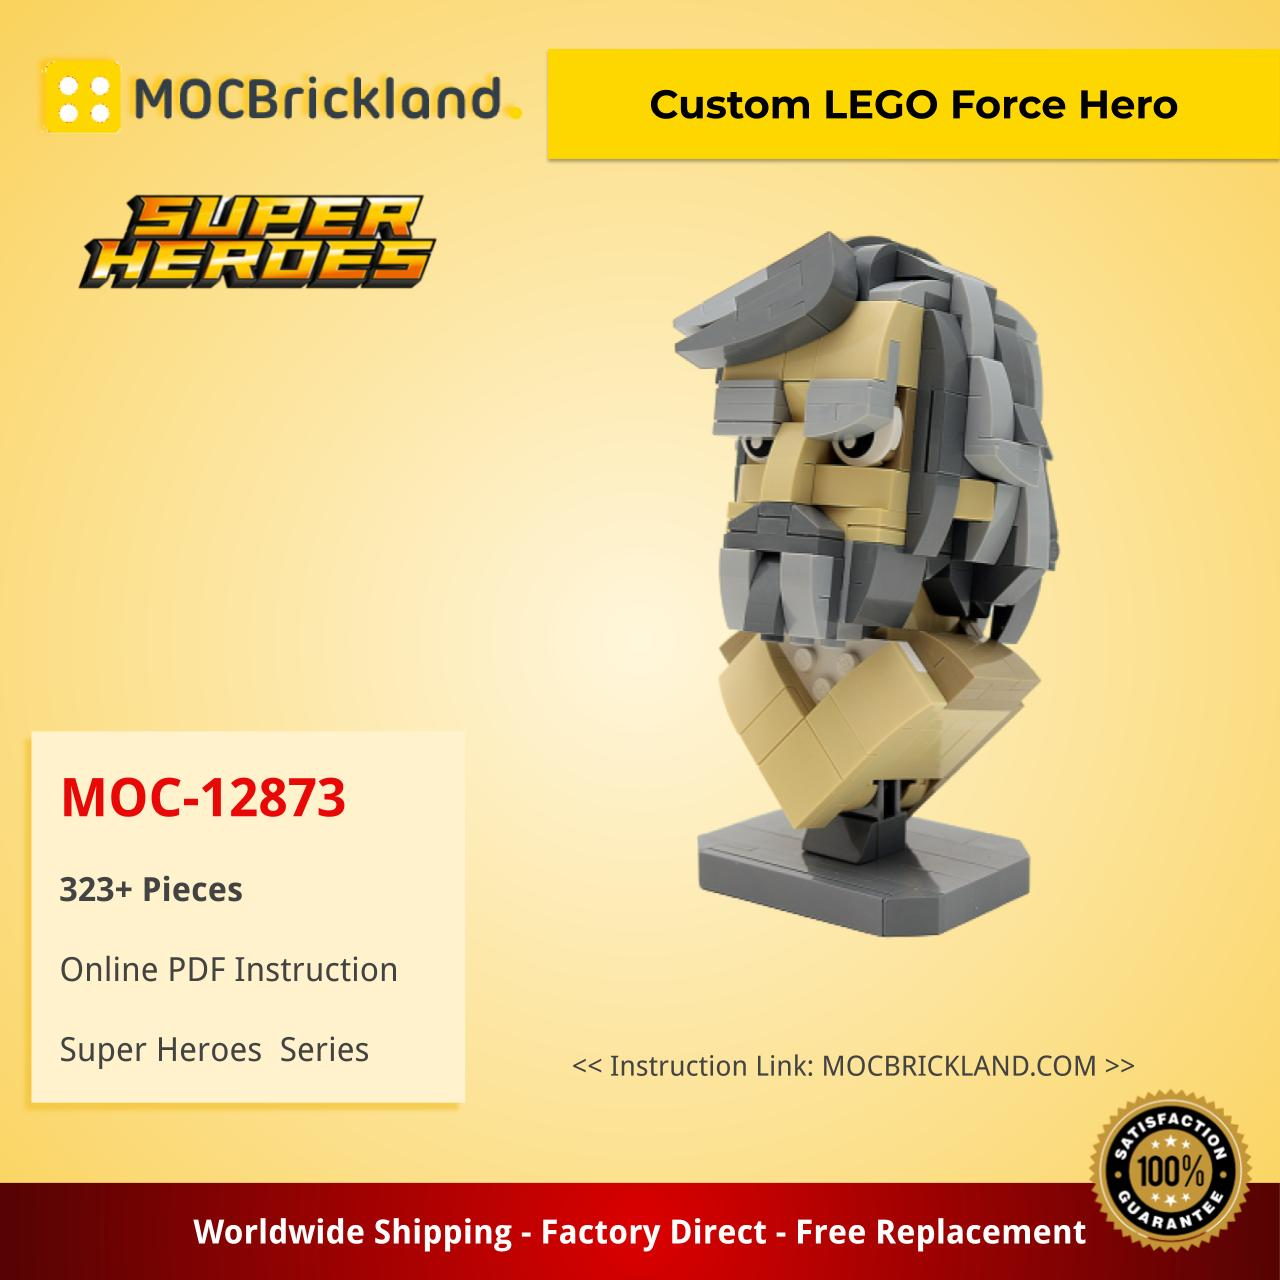 Share-MOC-BRICK-LAND-Product-Design-3.jp